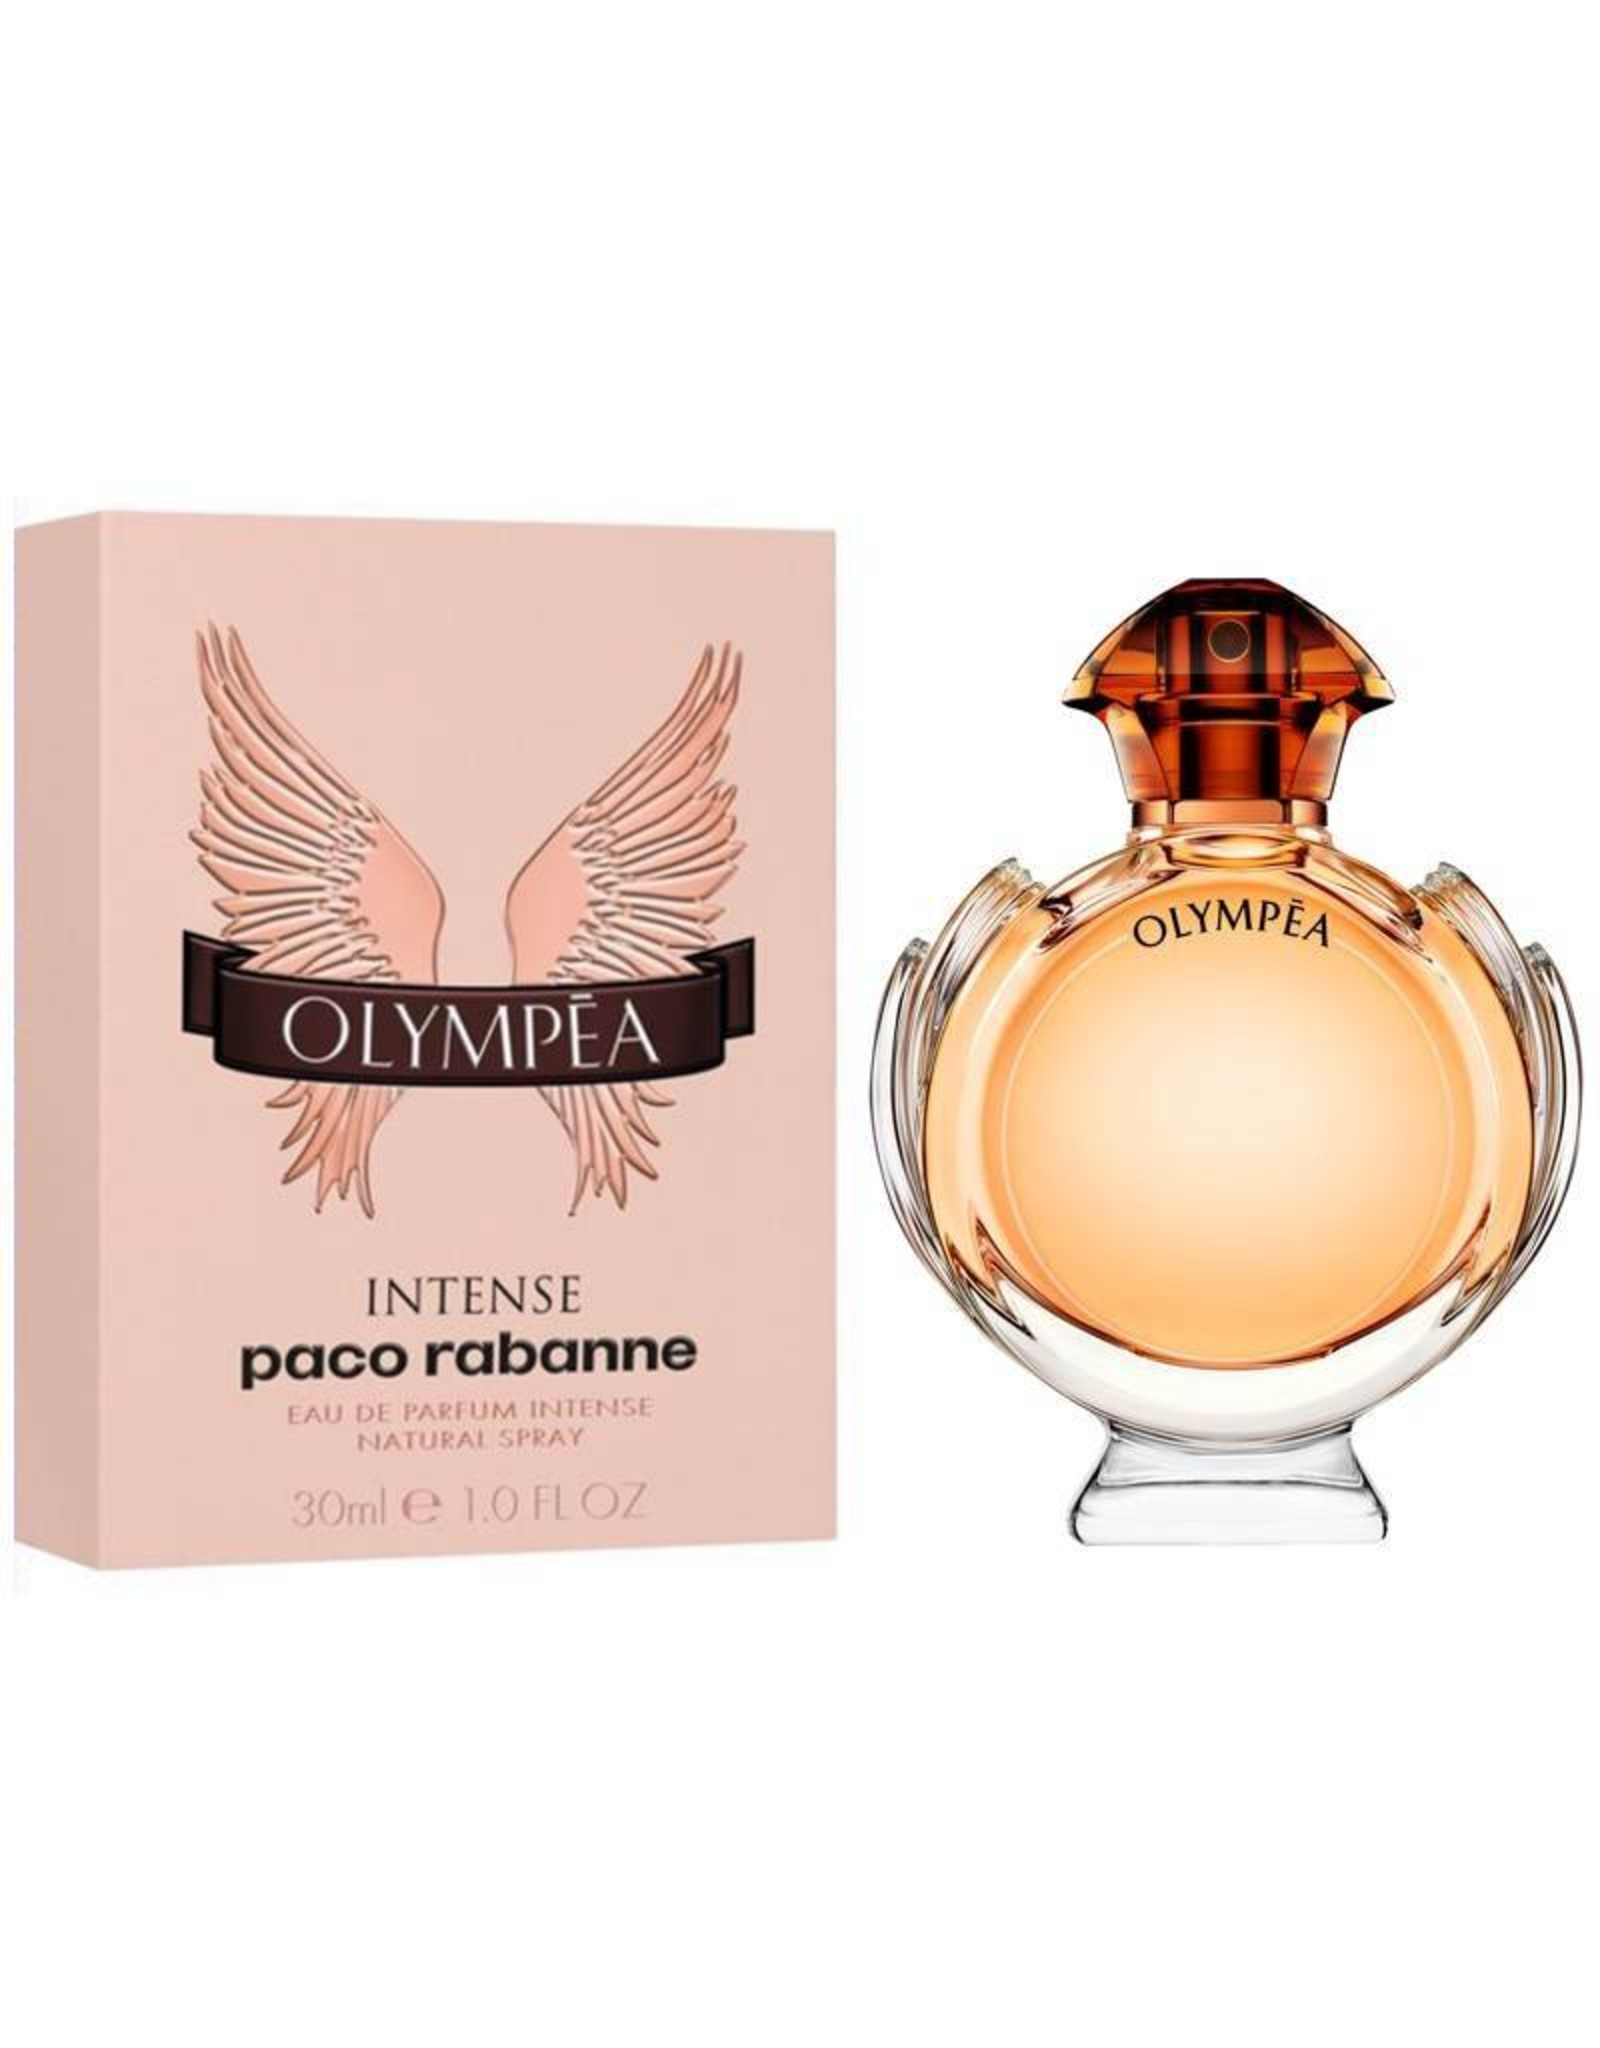 PACO RABANNE PACO RABANNE OLYMPEA INTENSE